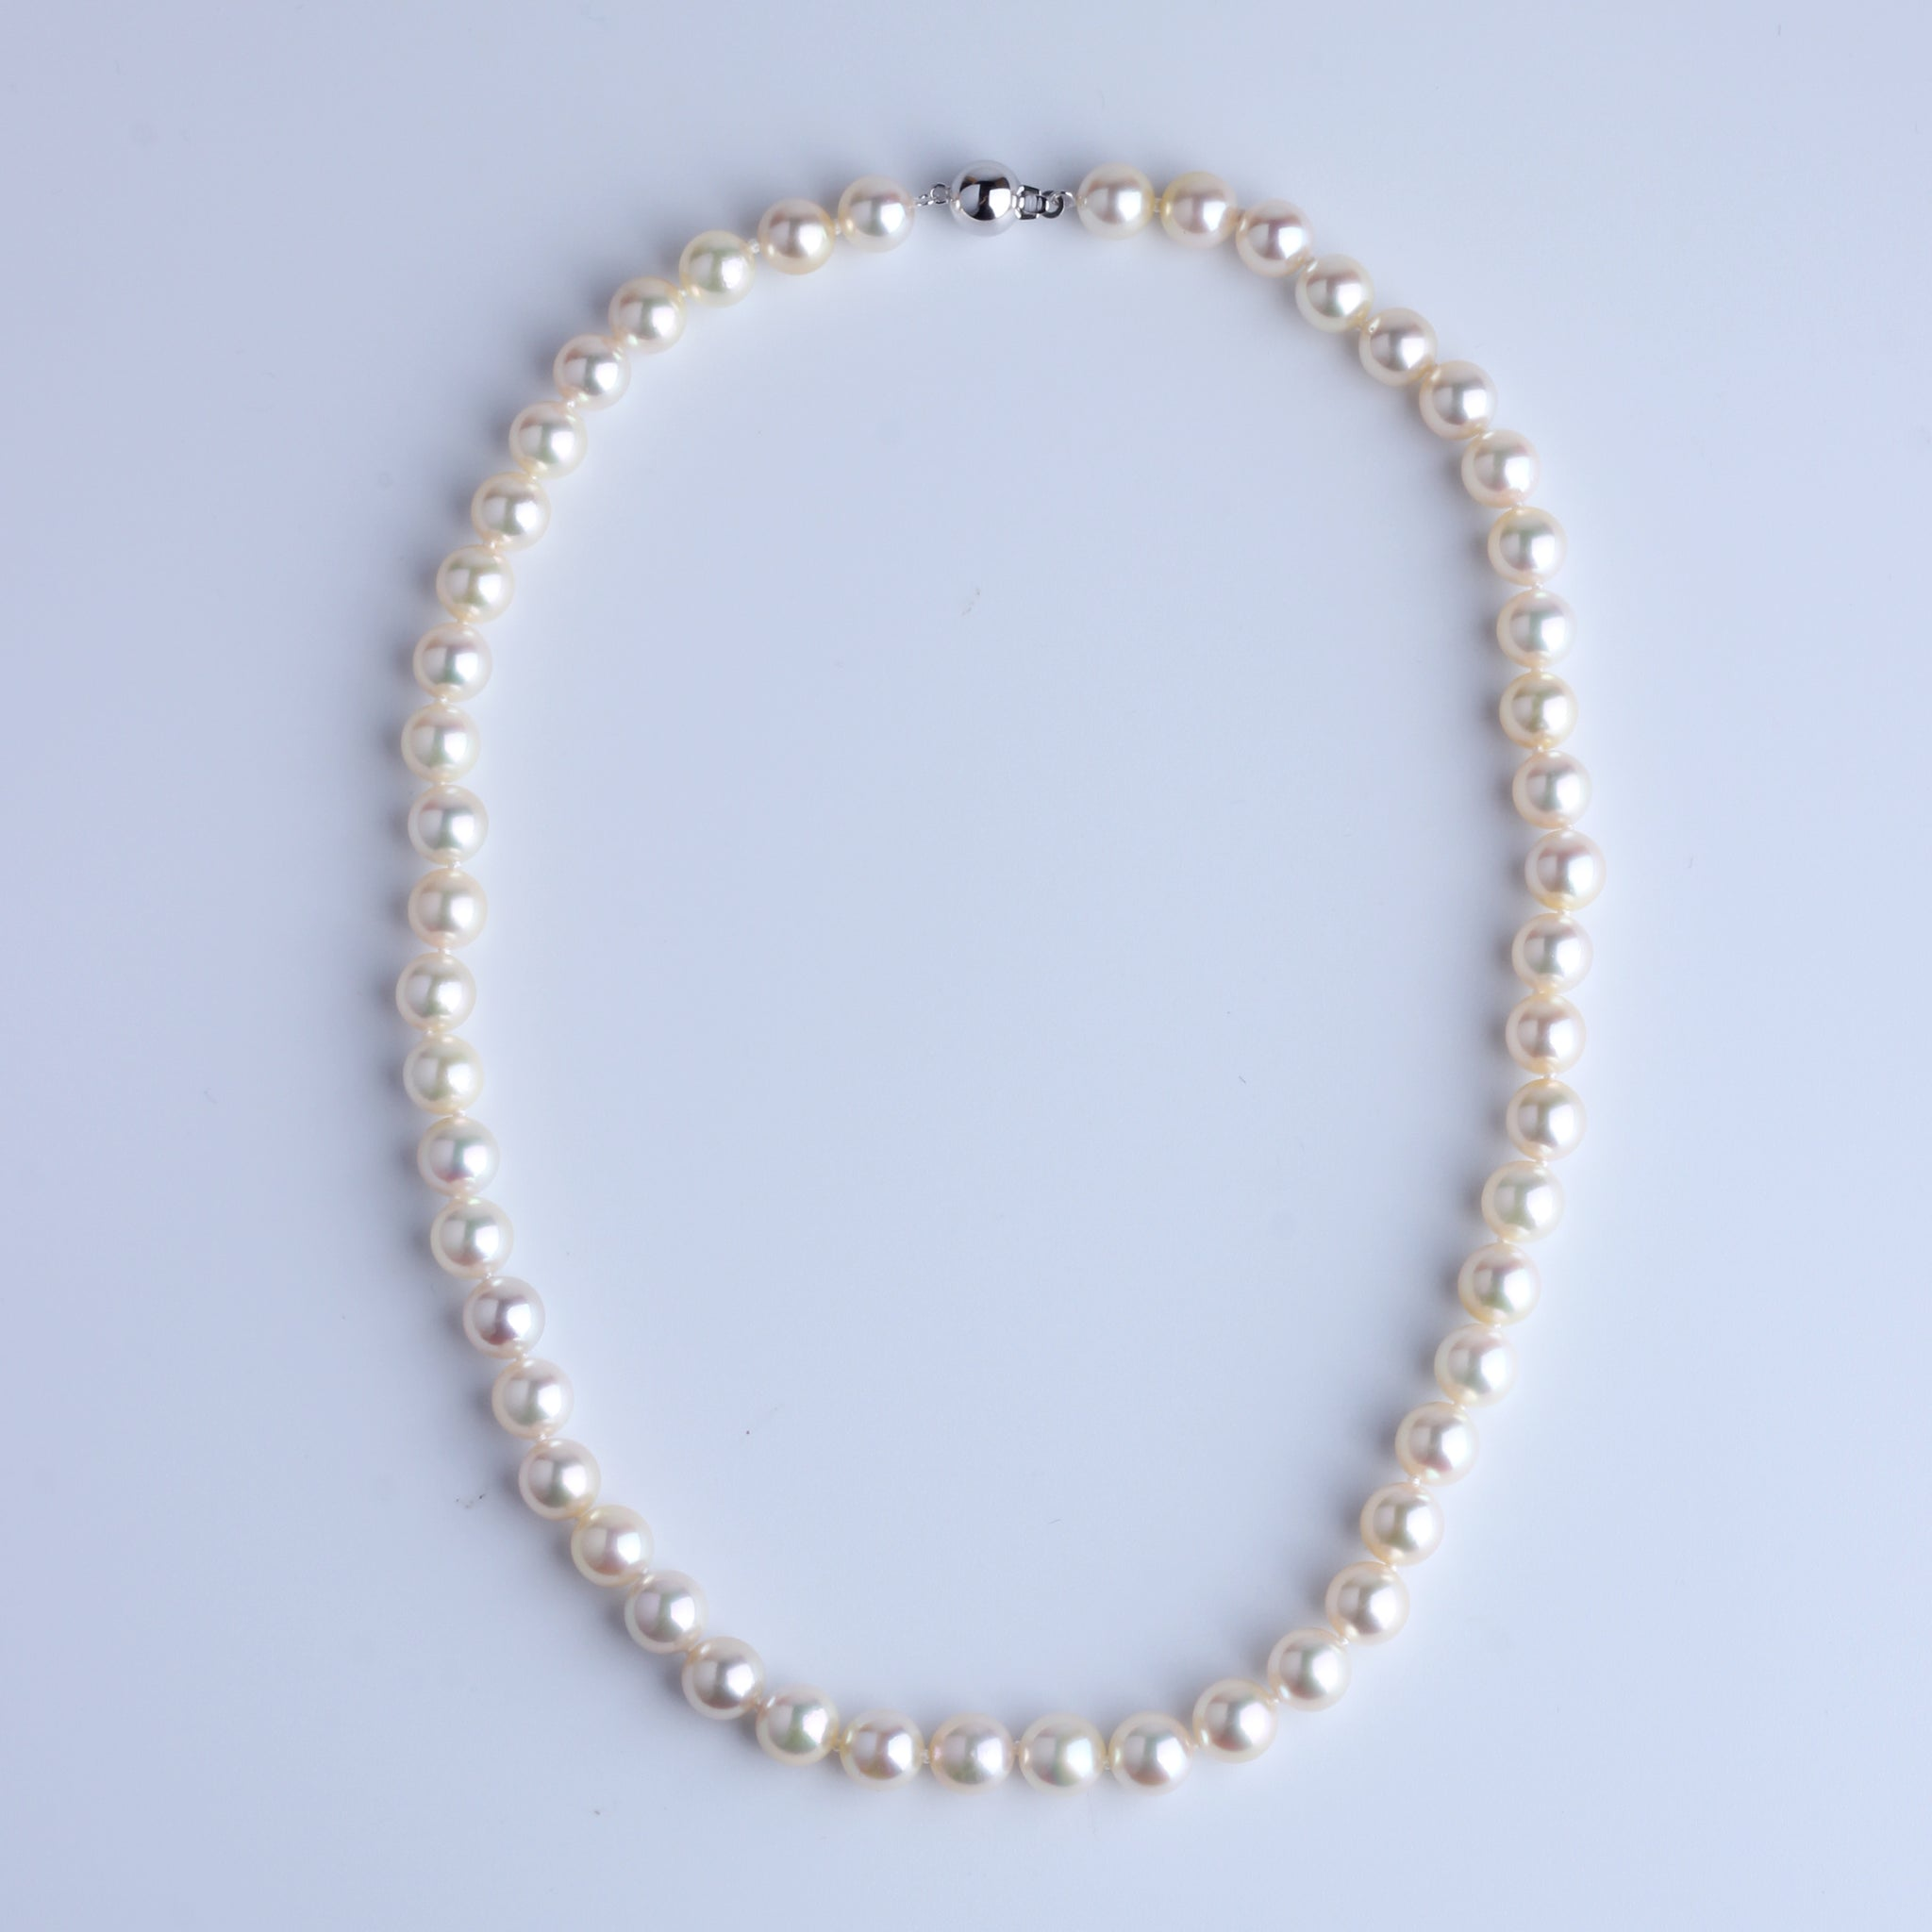 Queen Color Japan Akoya Pearl Necklace 8-8.5mm - Woment Designer Jewelry